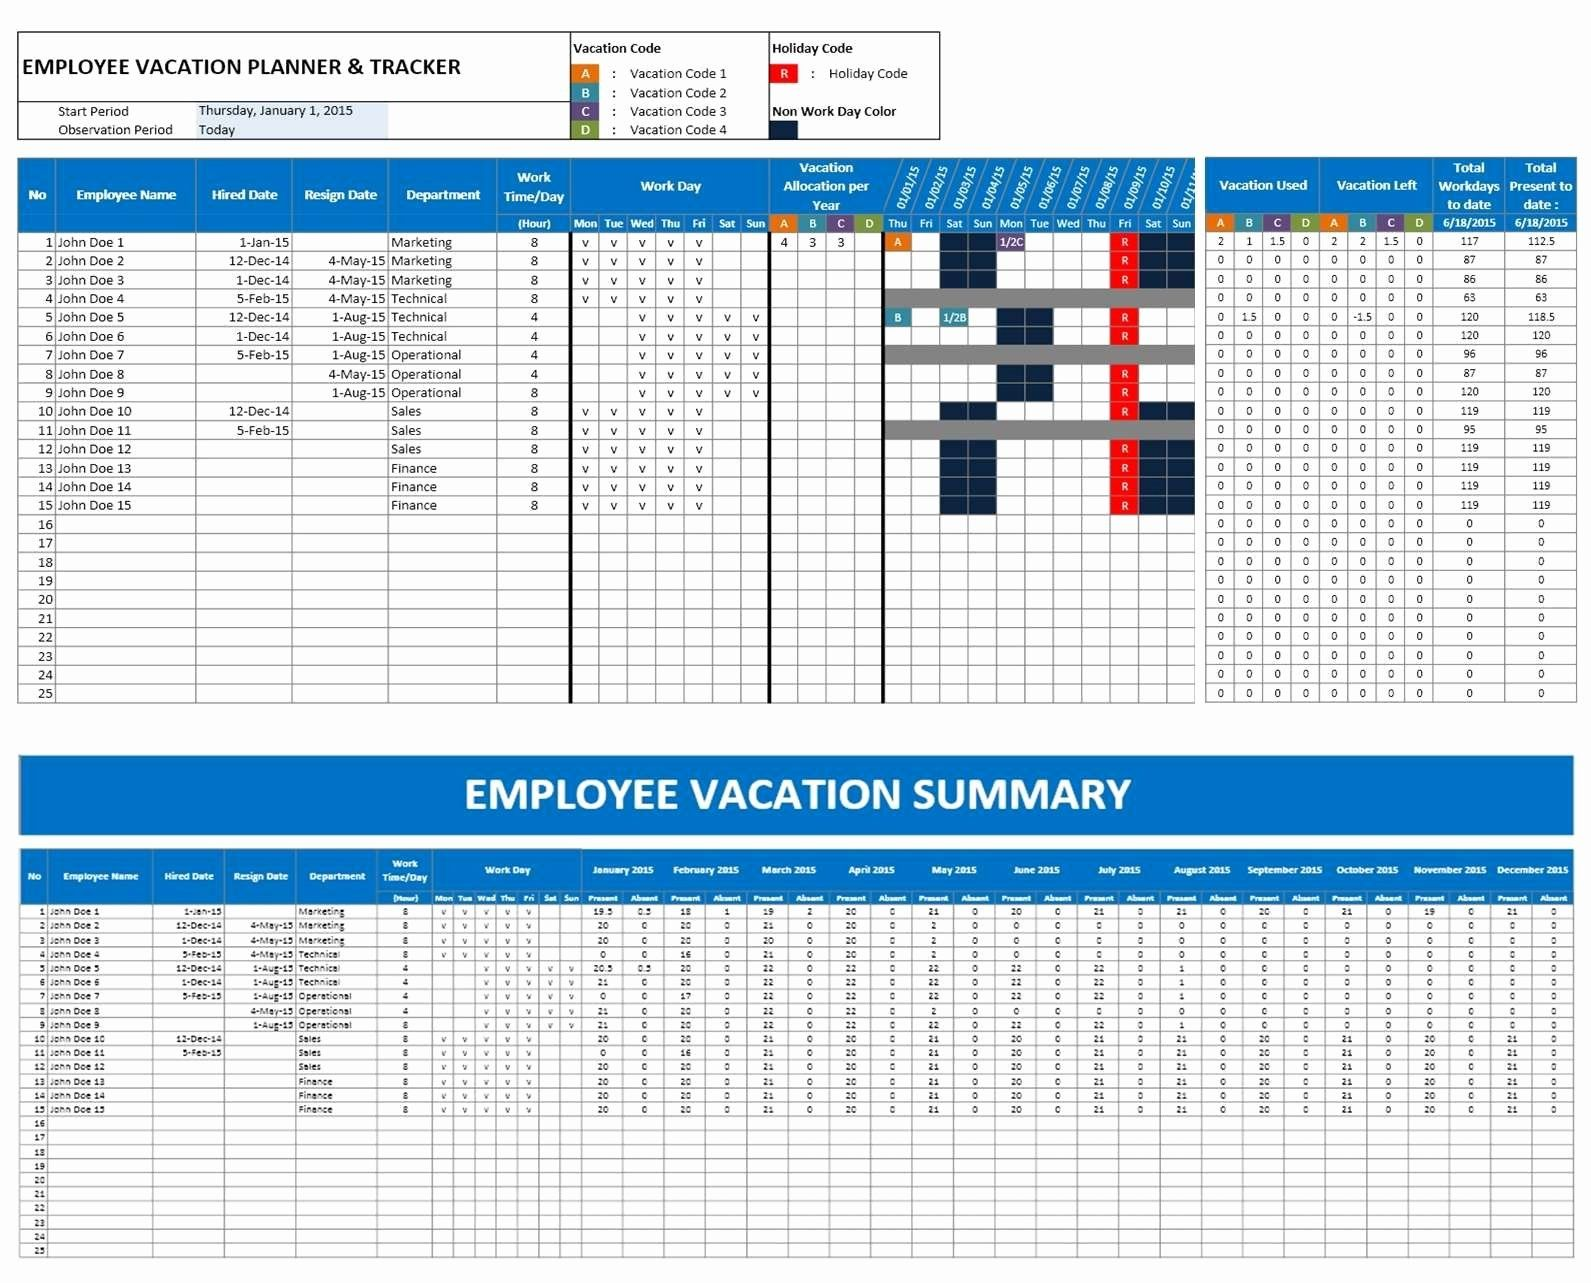 Employee Vacation Tracking Spreadsheet Template Awesome Free